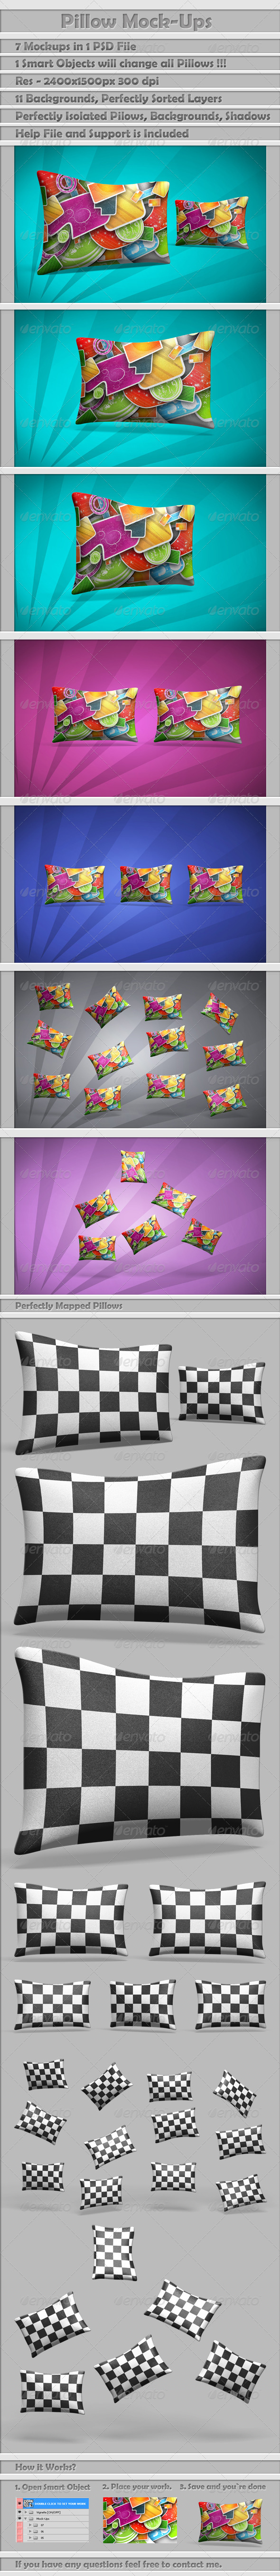 Pillow Mock-Ups